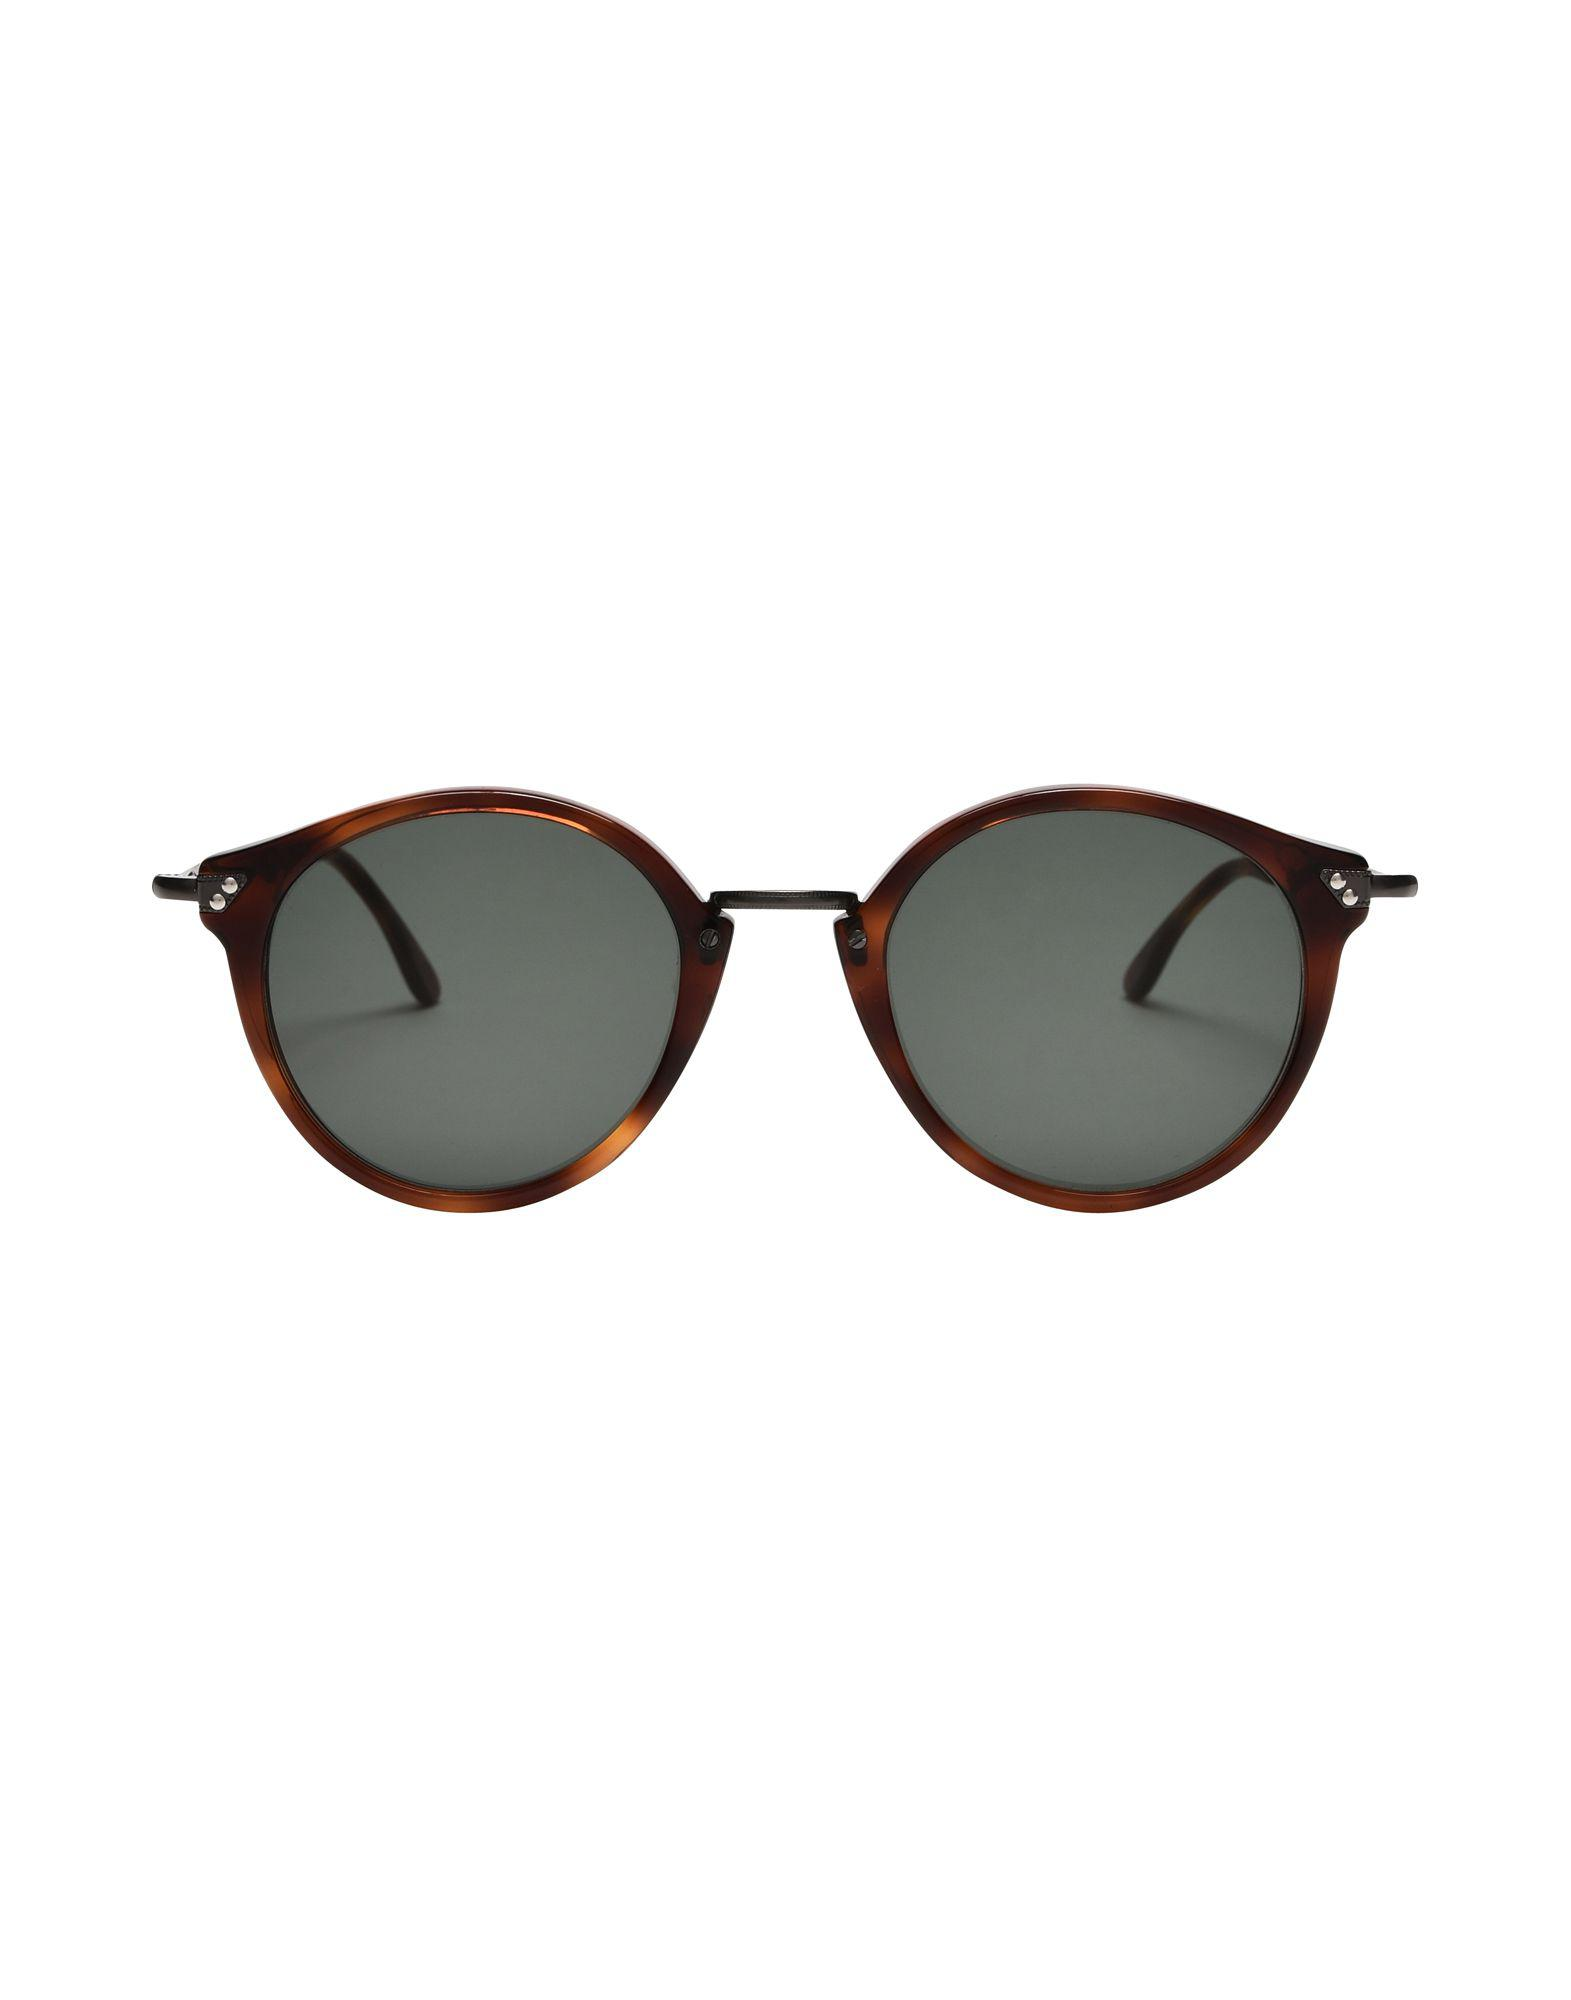 d8af594552b13 Kyme Sunglasses in Brown - Lyst